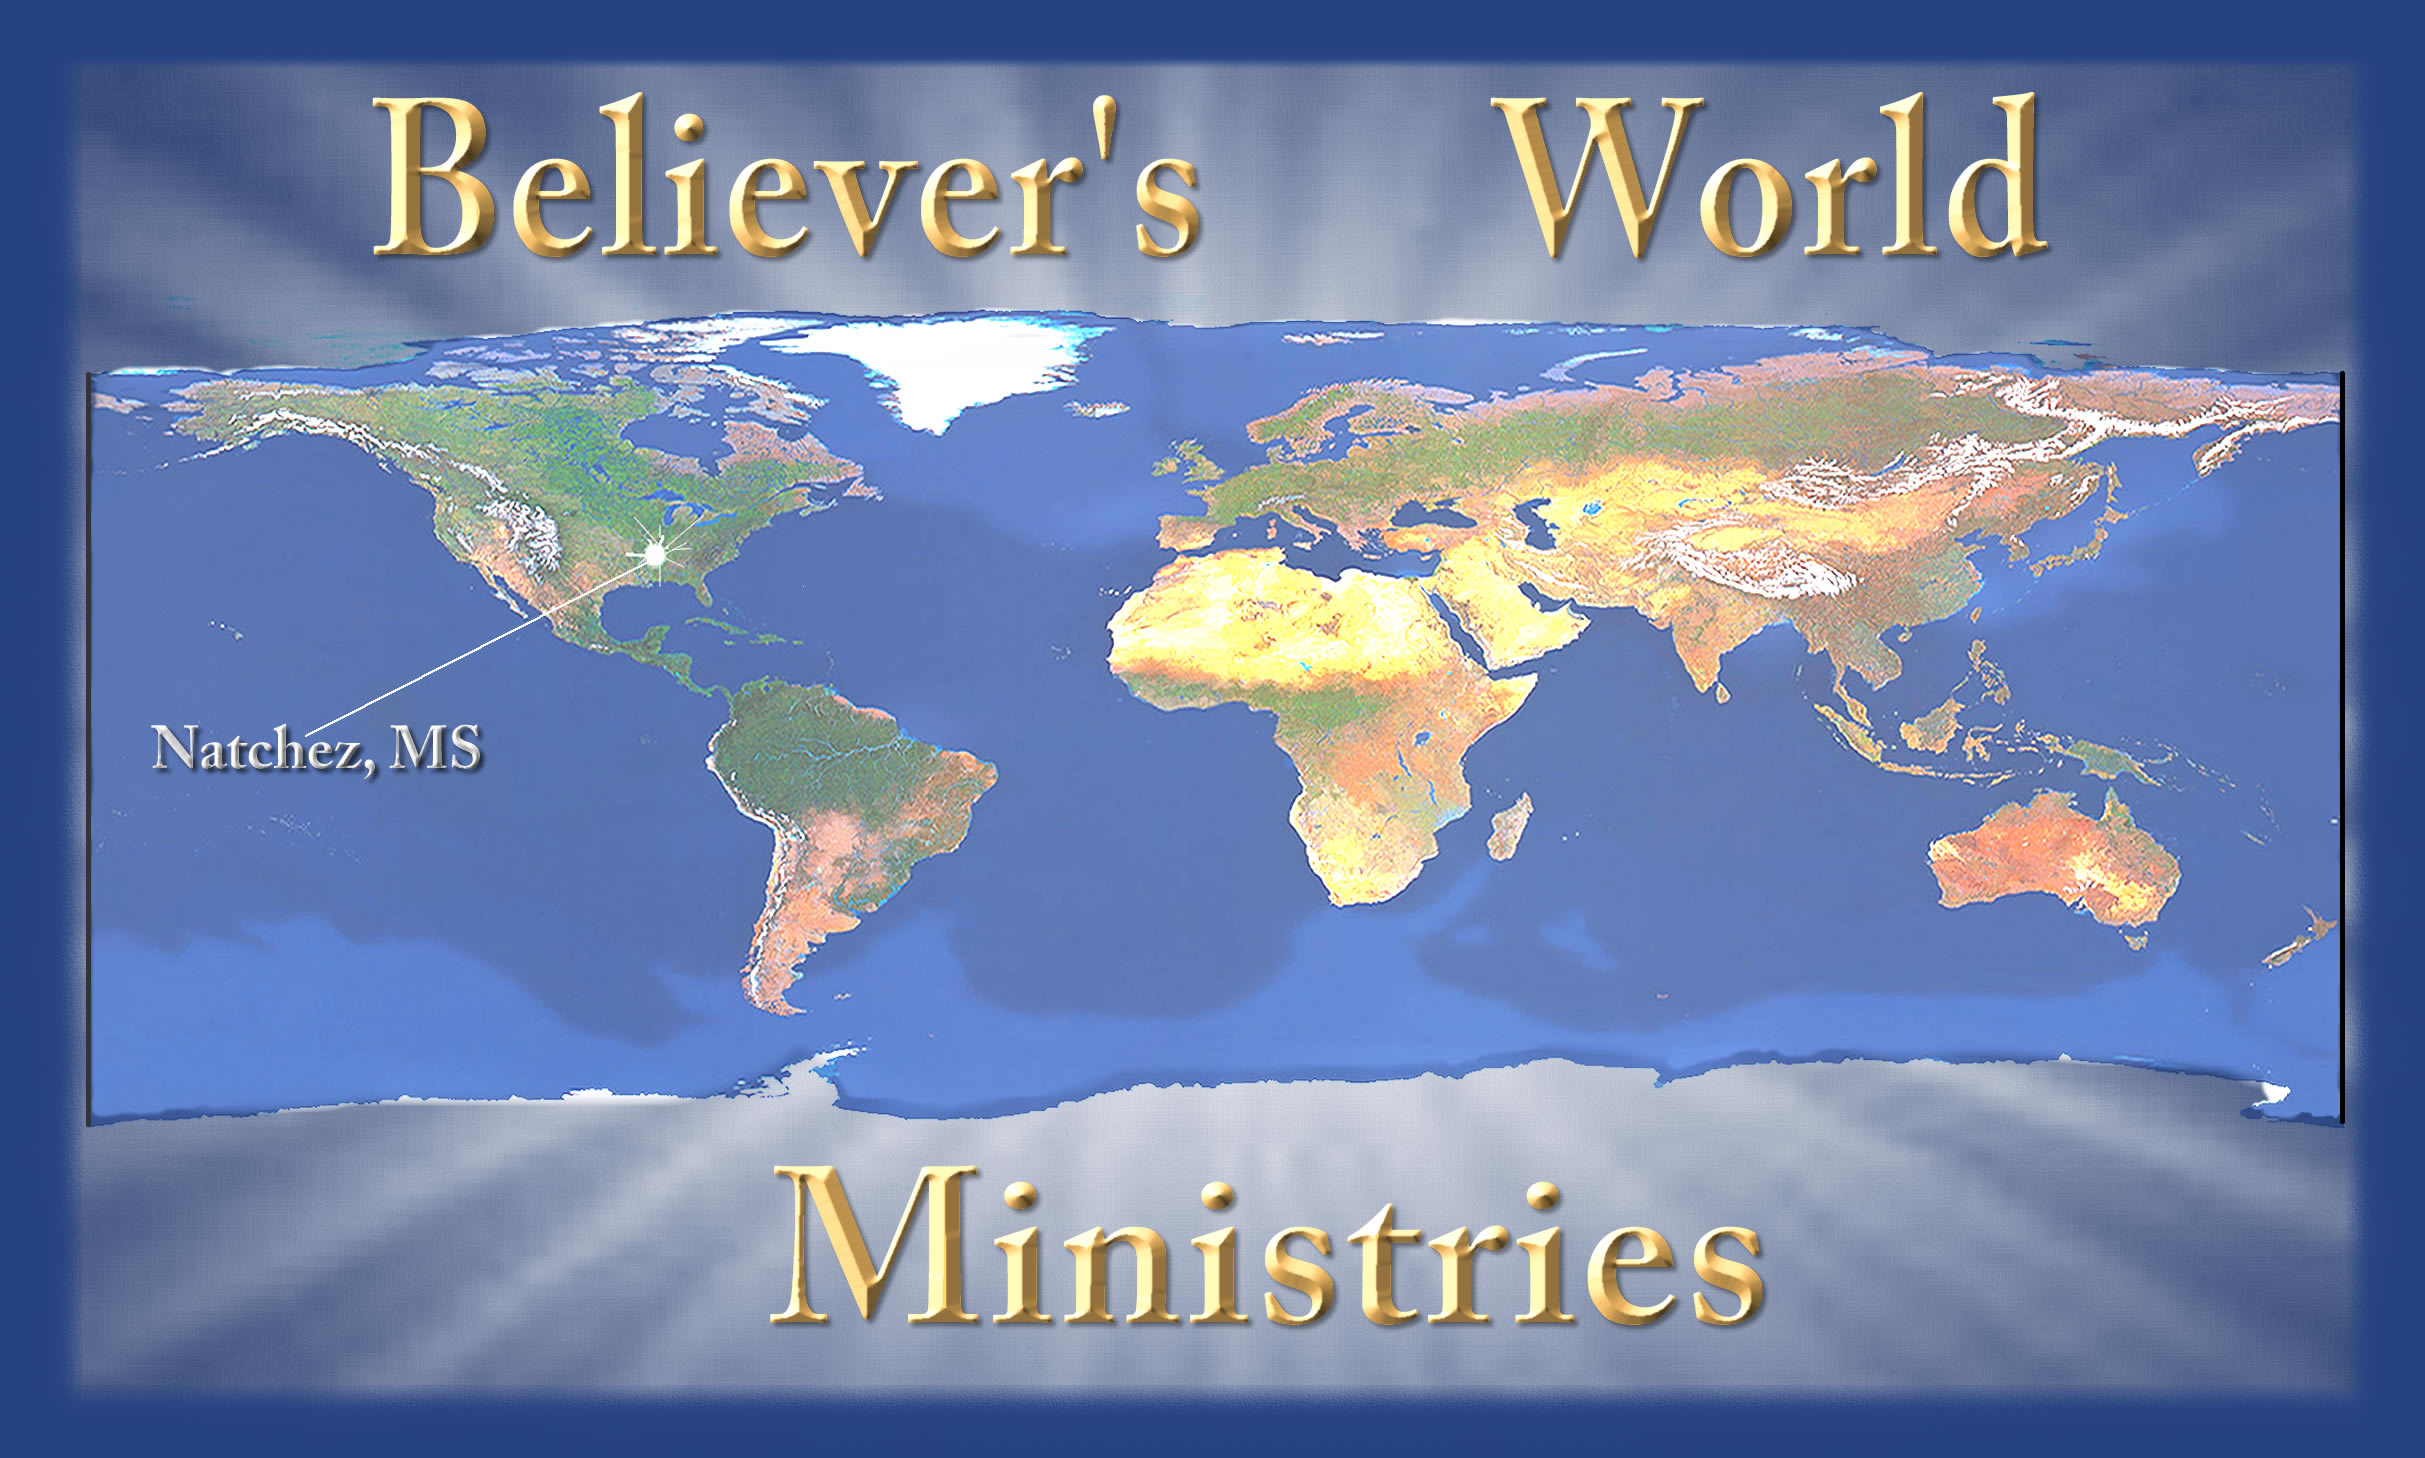 Believer's World Ministries